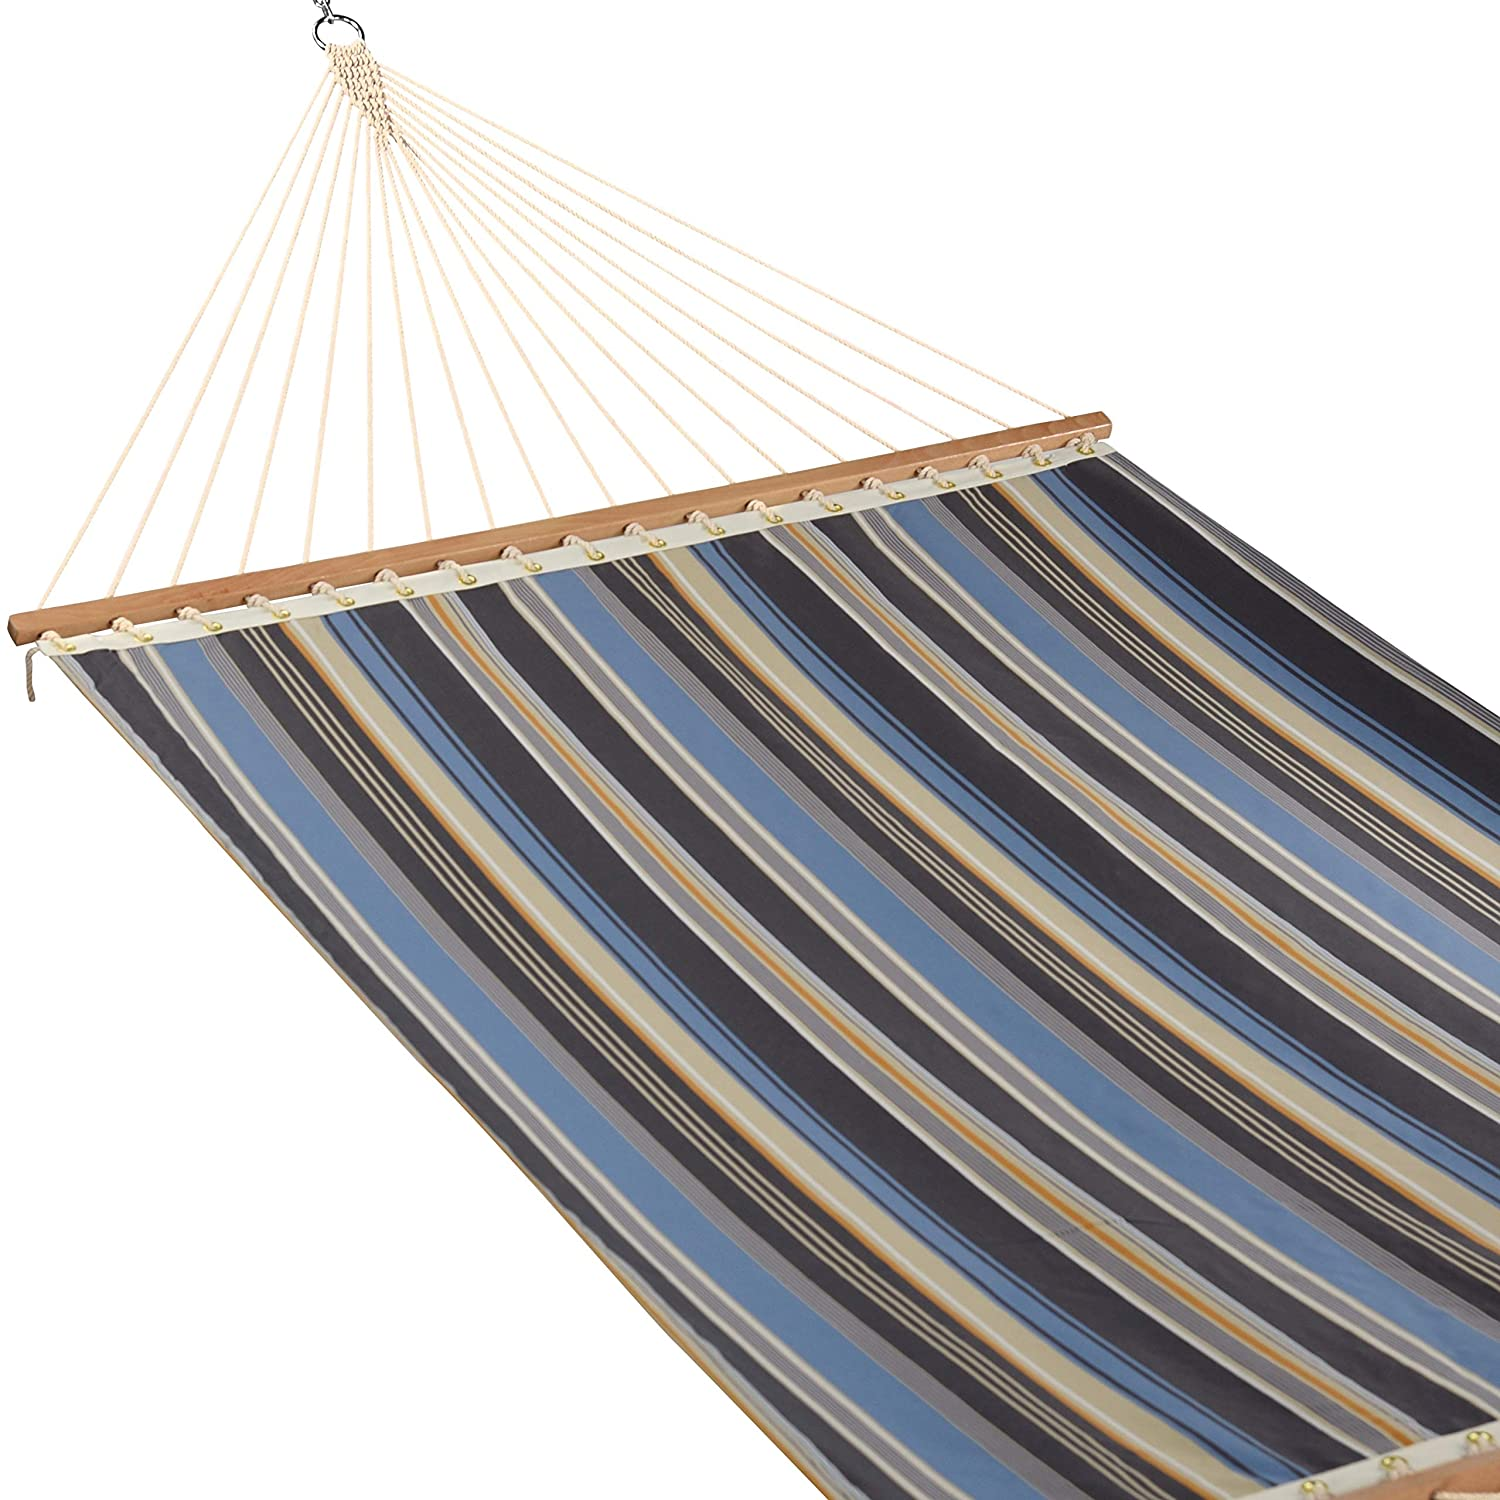 Caribbean Hammocks – Single Layer Olefin Hammock Grey Blue